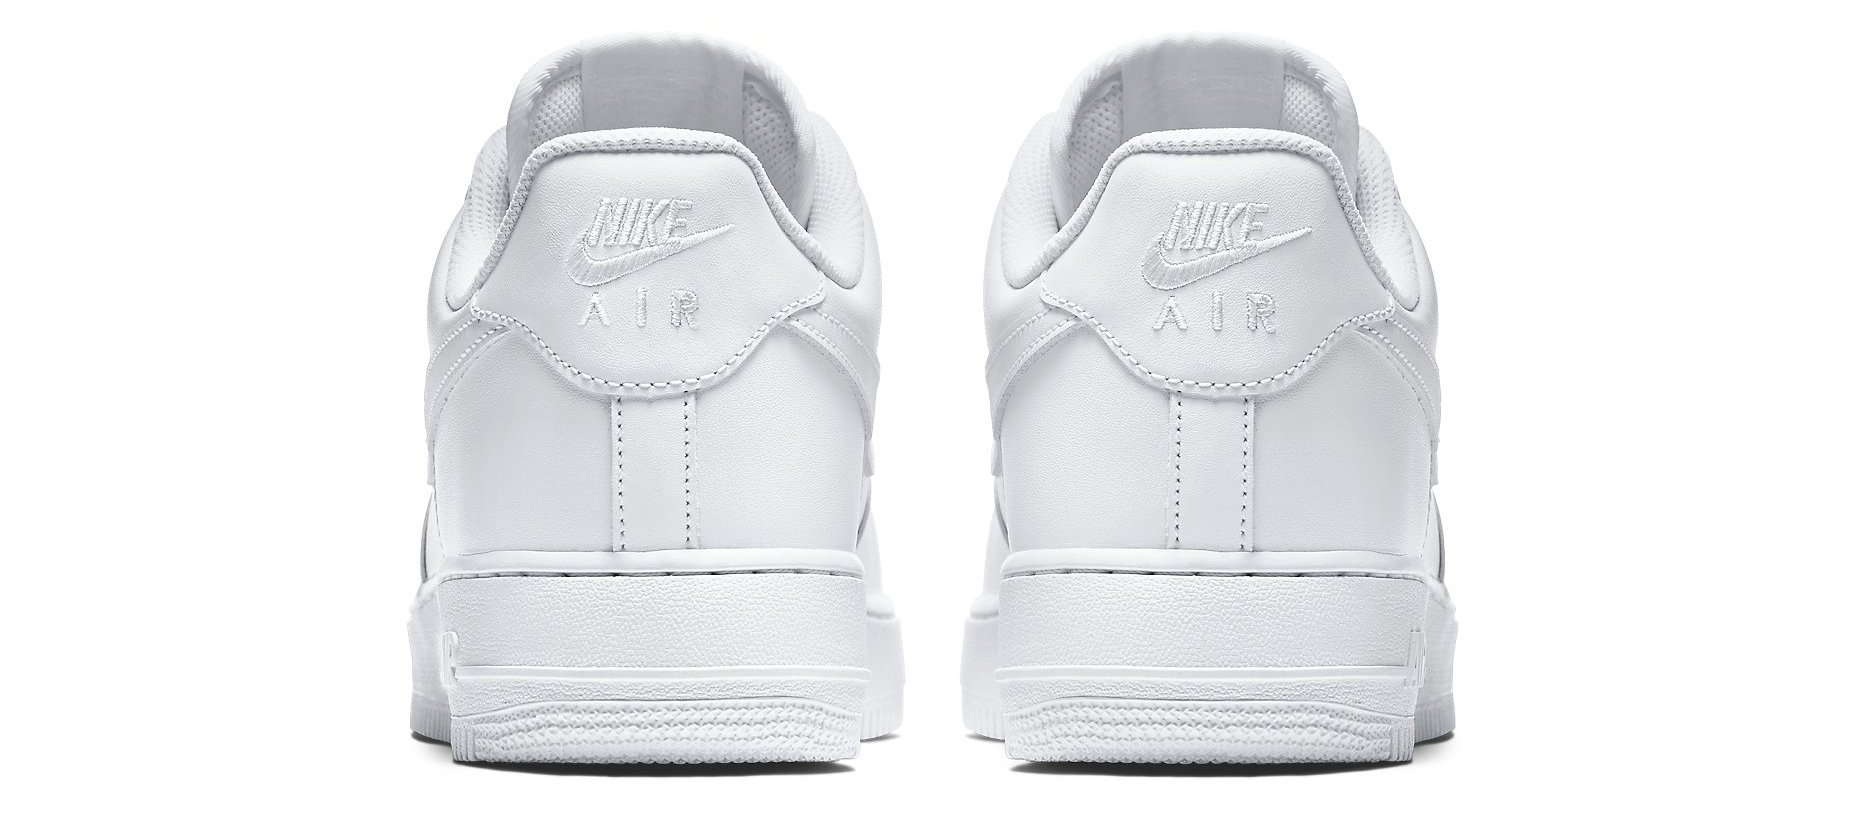 Shoes Nike AIR FORCE 1 '07